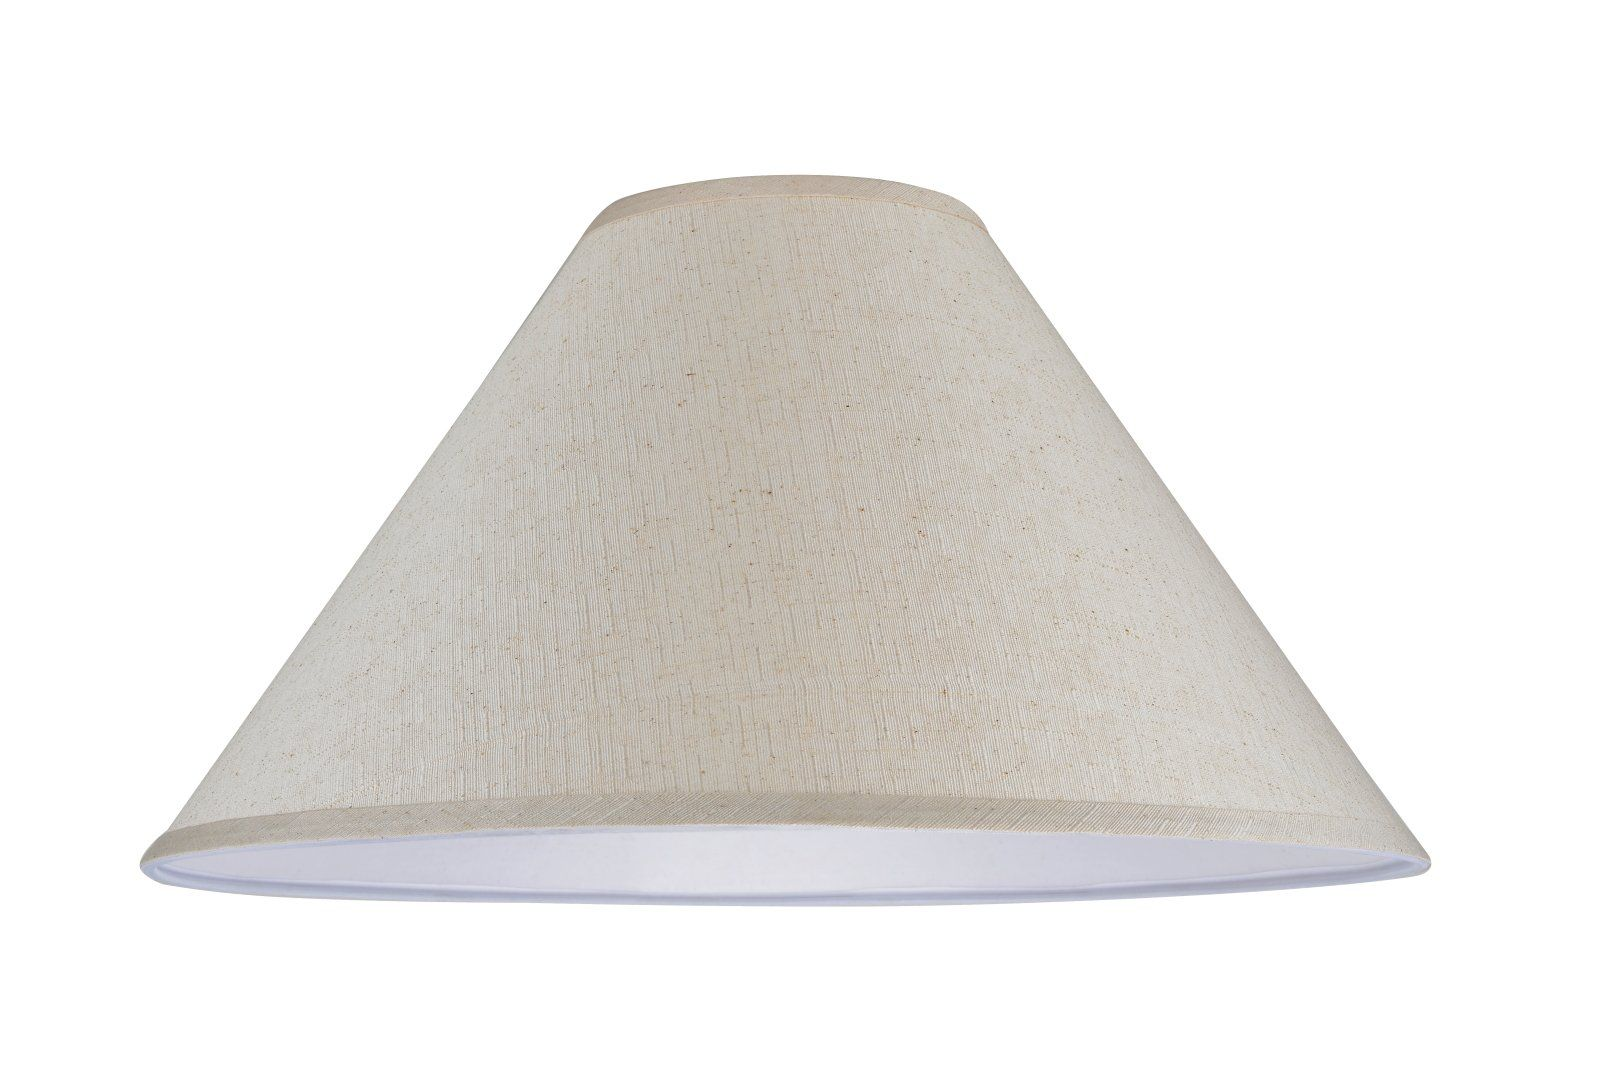 535dcfa4b18 Aspen Creative 32201 Transitional Hardback Empire Shape Spider Construction Lamp  Shade in Off White 19 wide 6 x 19 x 12 -- Examine out this excellent ...